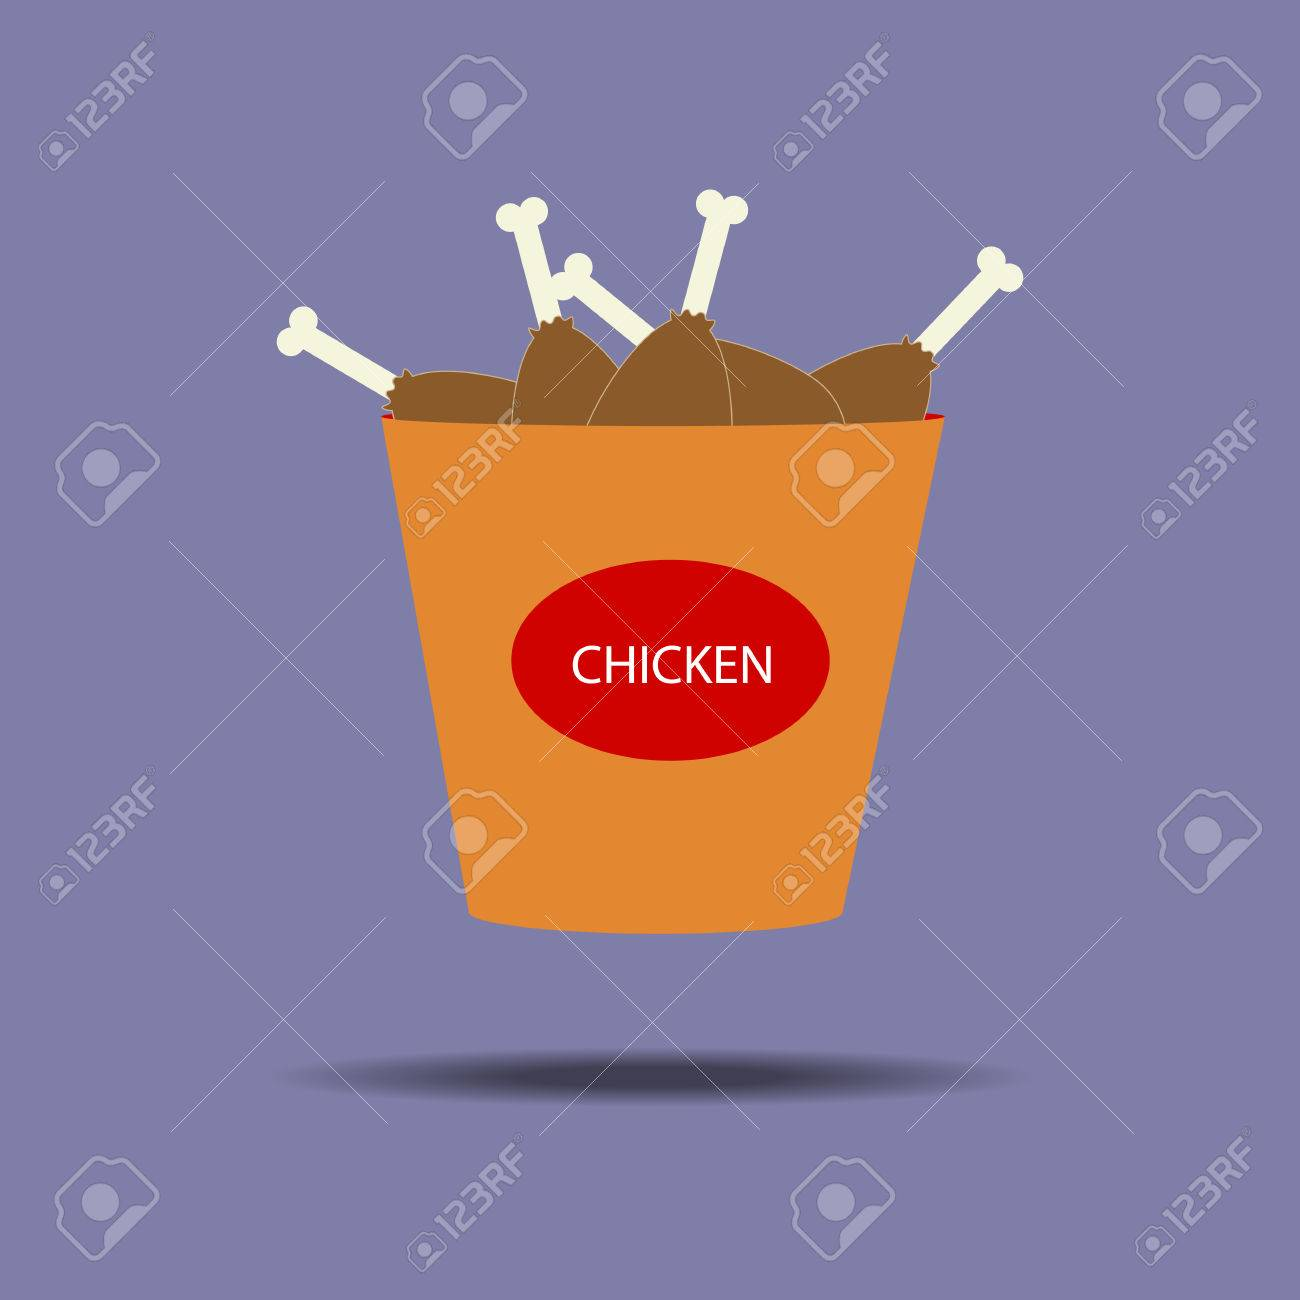 Bucket Of Chicken Legs Icon Fried Chicken Snack Fast Food Royalty Free Cliparts Vectors And Stock Illustration Image 54878935